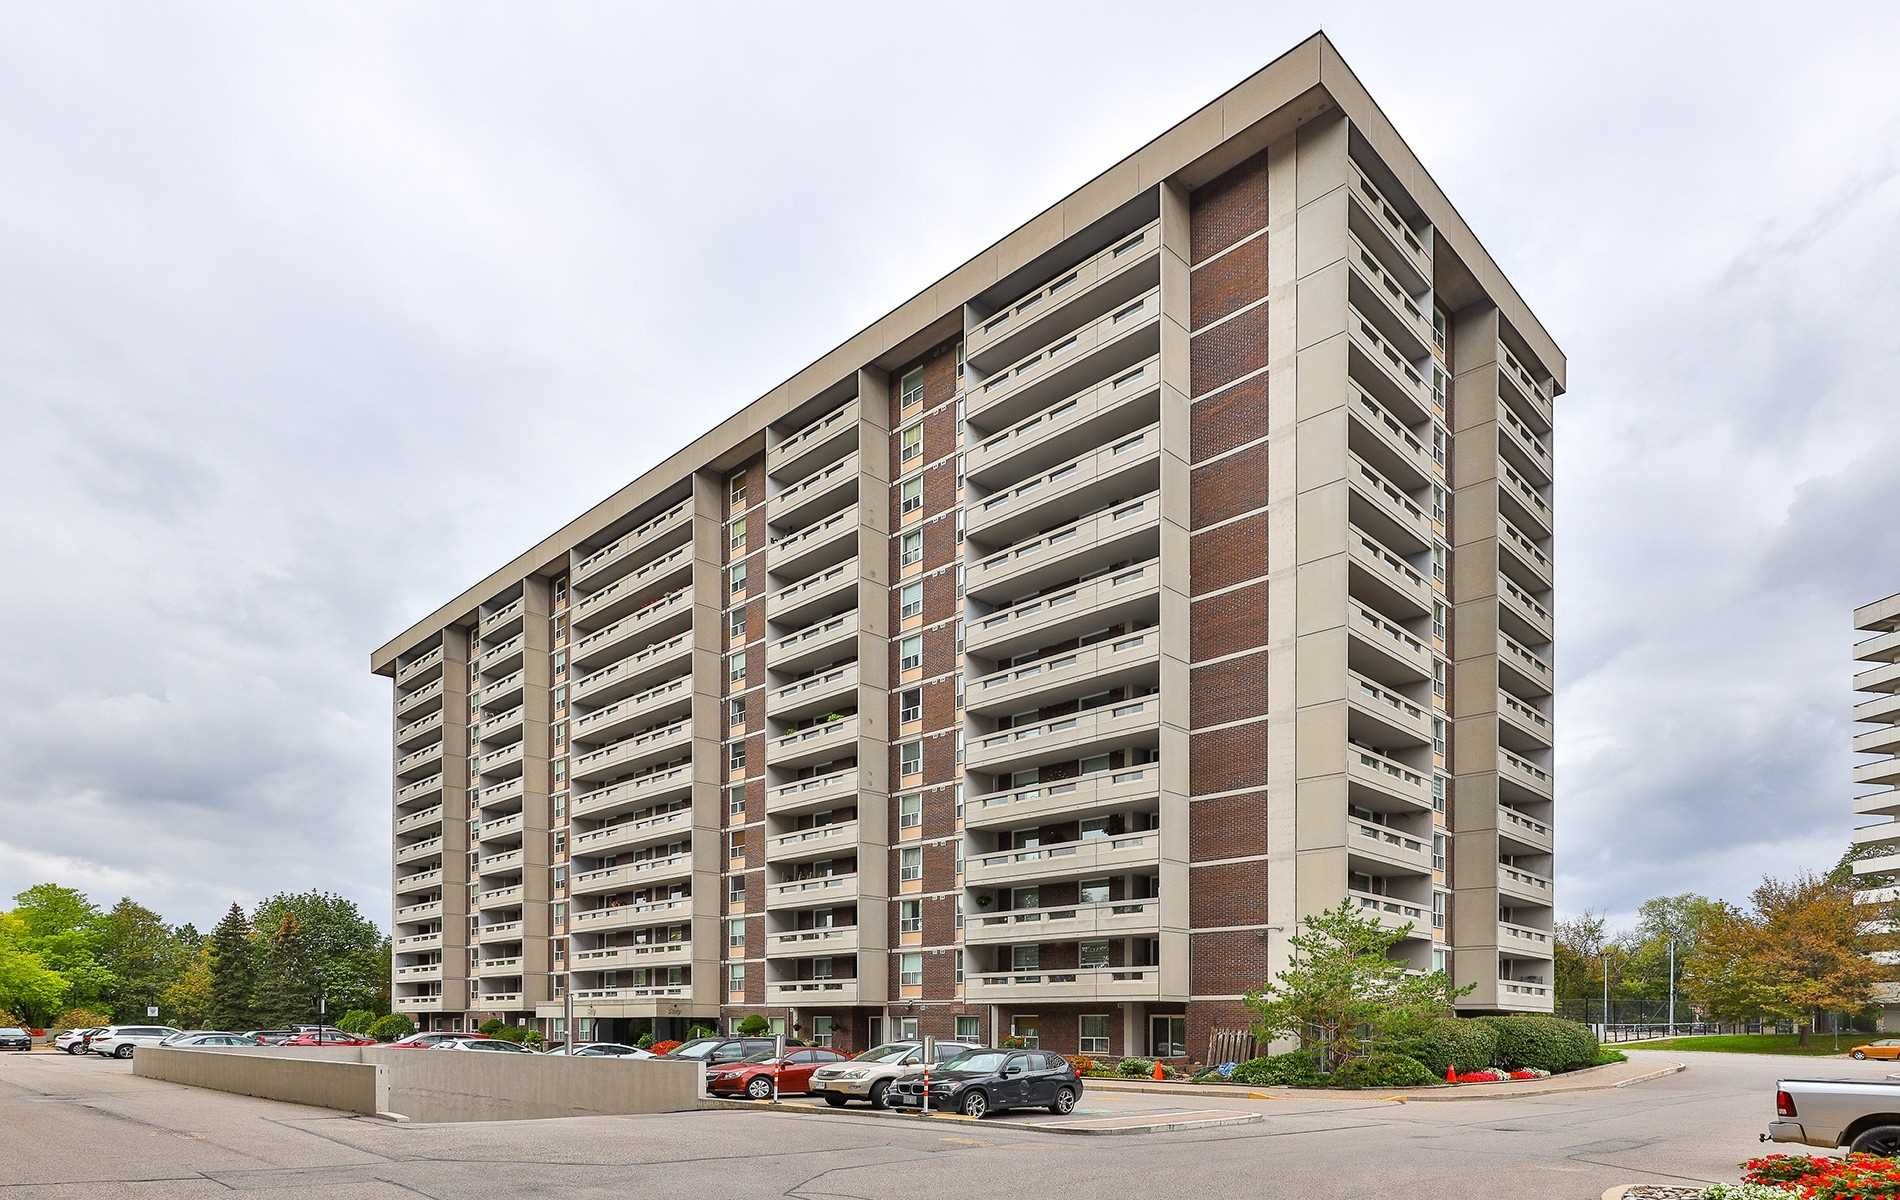 Main Photo: 1102 60 Inverlochy Boulevard in Markham: Royal Orchard Condo for sale : MLS®# N5402290